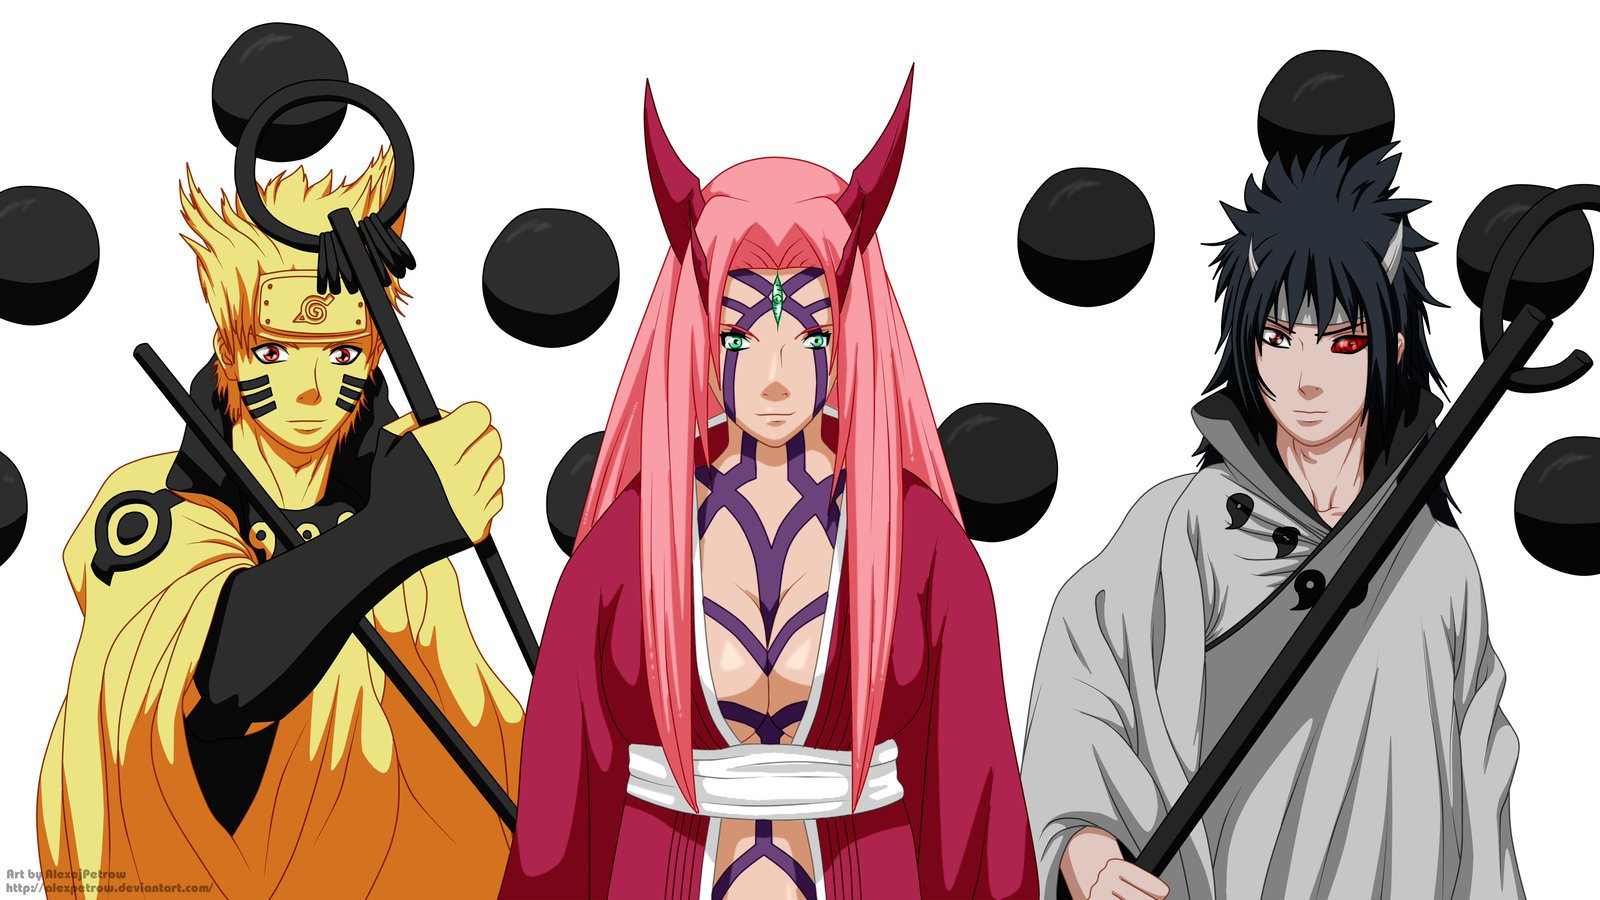 Naruto Res: 1600x900 / Size:218kb. Views: 32238